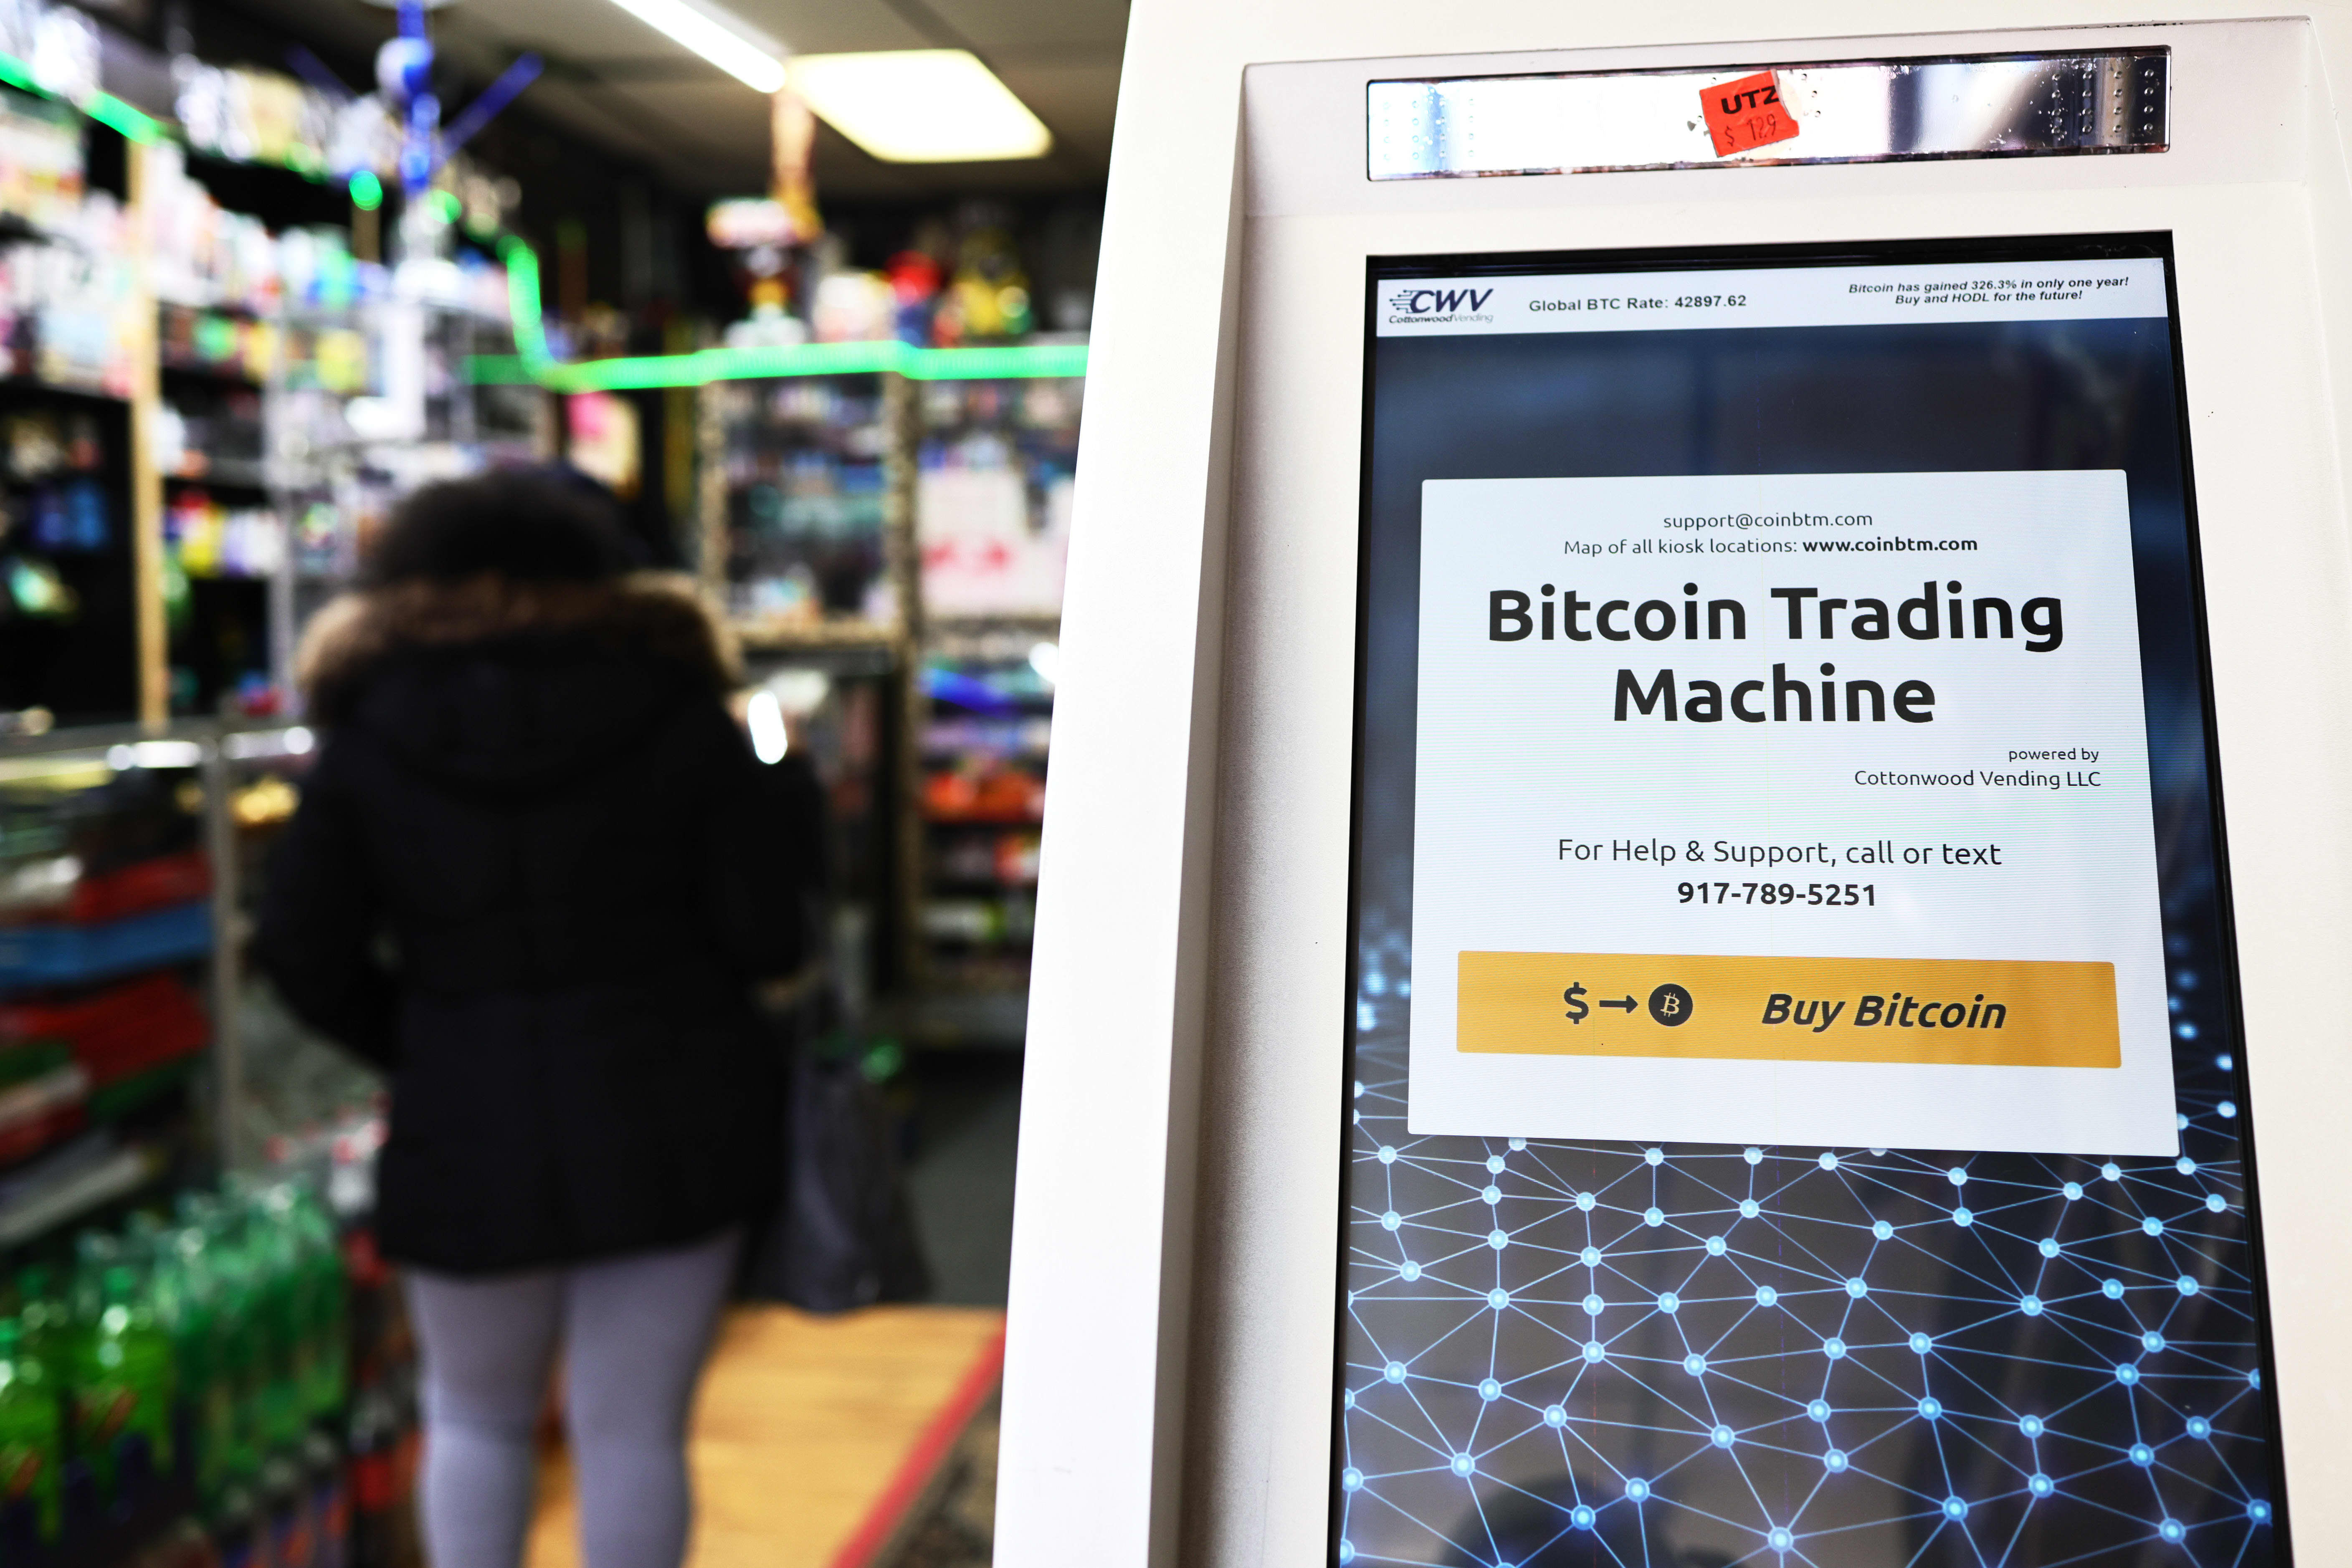 Feeling the warmth from staff, Wall Road banks get nearer to adopting bitcoin